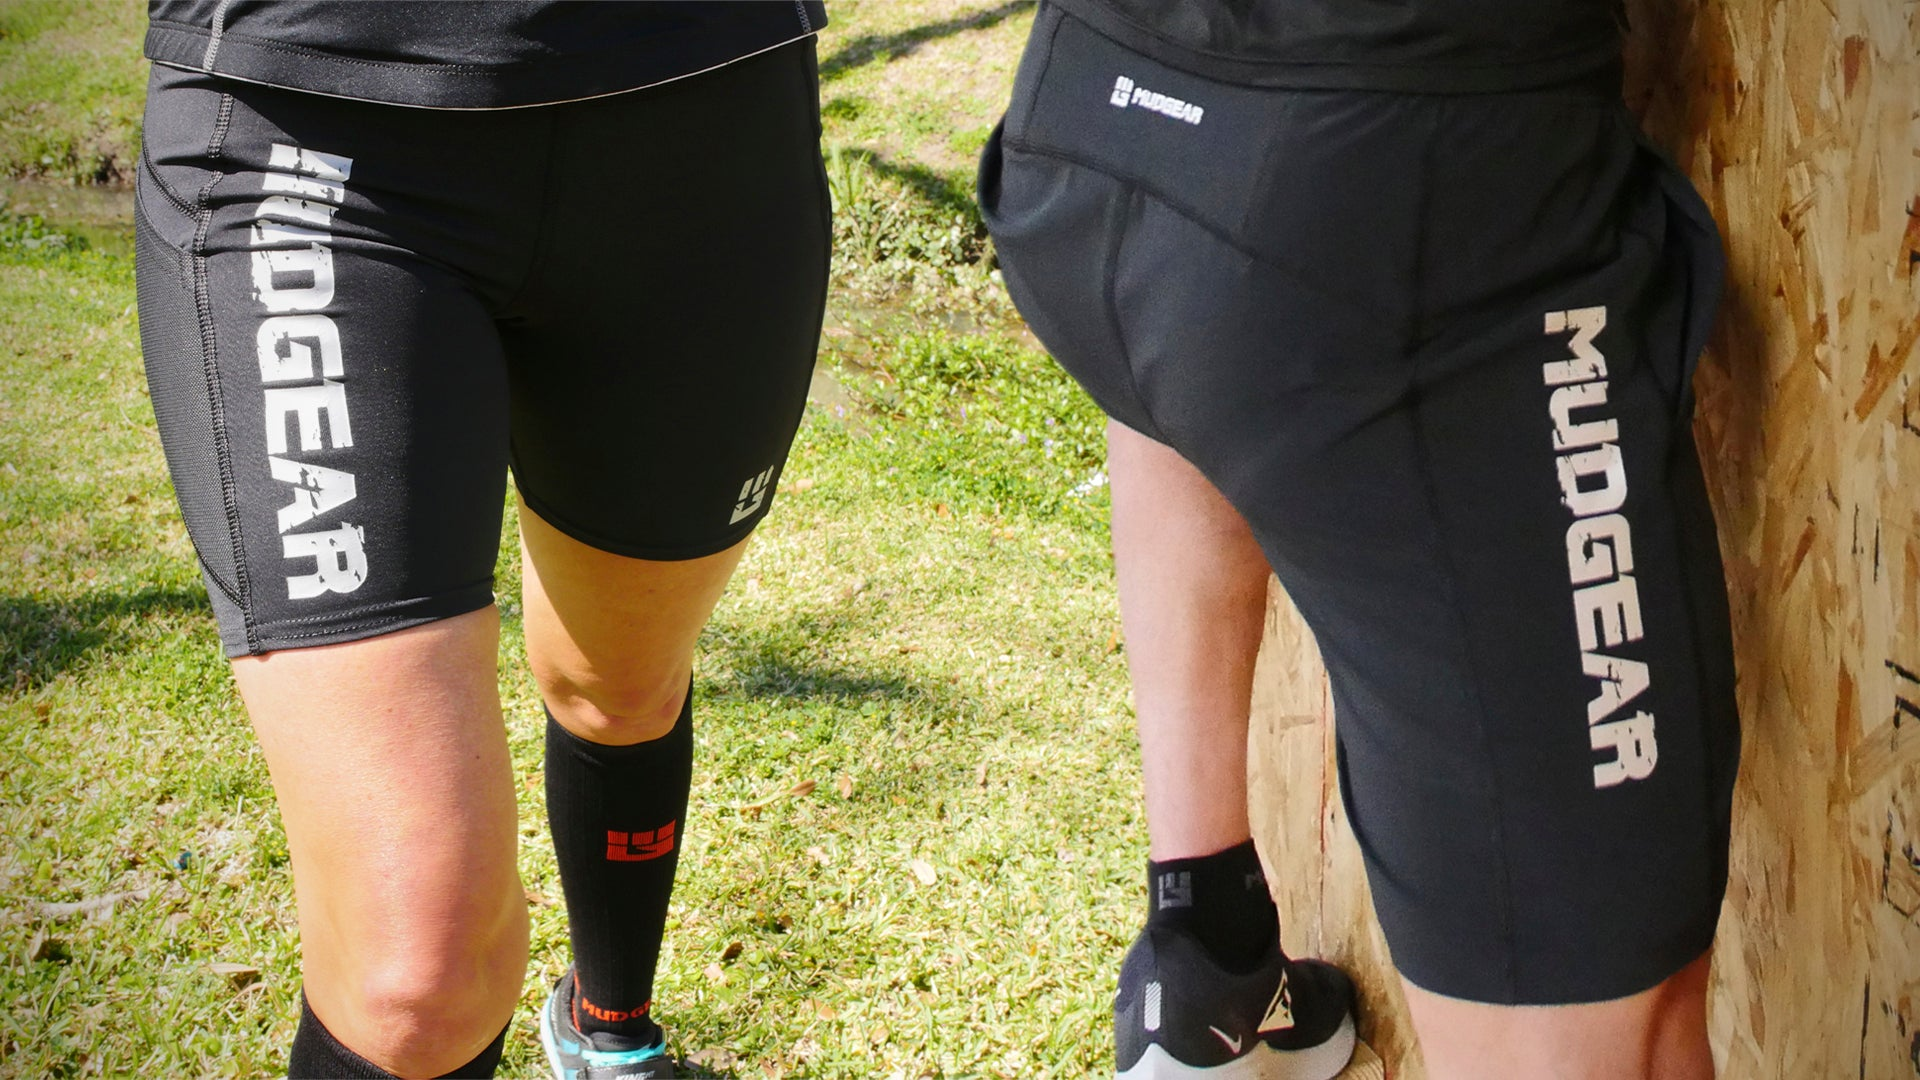 MudGear makes compression and loose fit shorts for Spartan races.